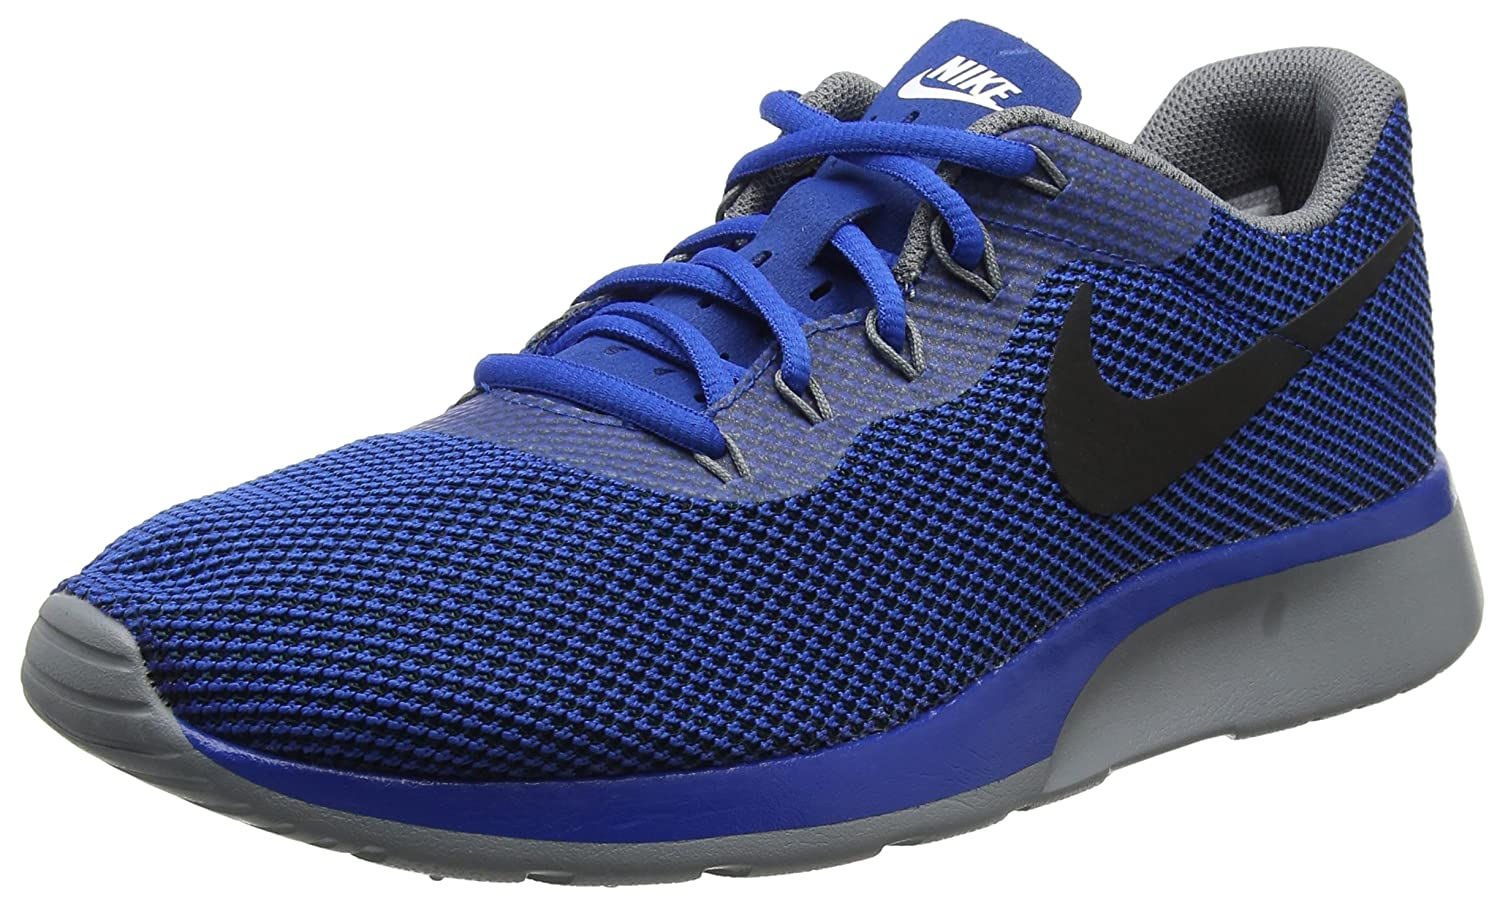 ac589afbc4c NIKE MENS NIKE TANJUN RACER BLUE JAY BLACK WOLF GREY SIZE (UK-11) (US-12)   Buy Online at Low Prices in India - Amazon.in